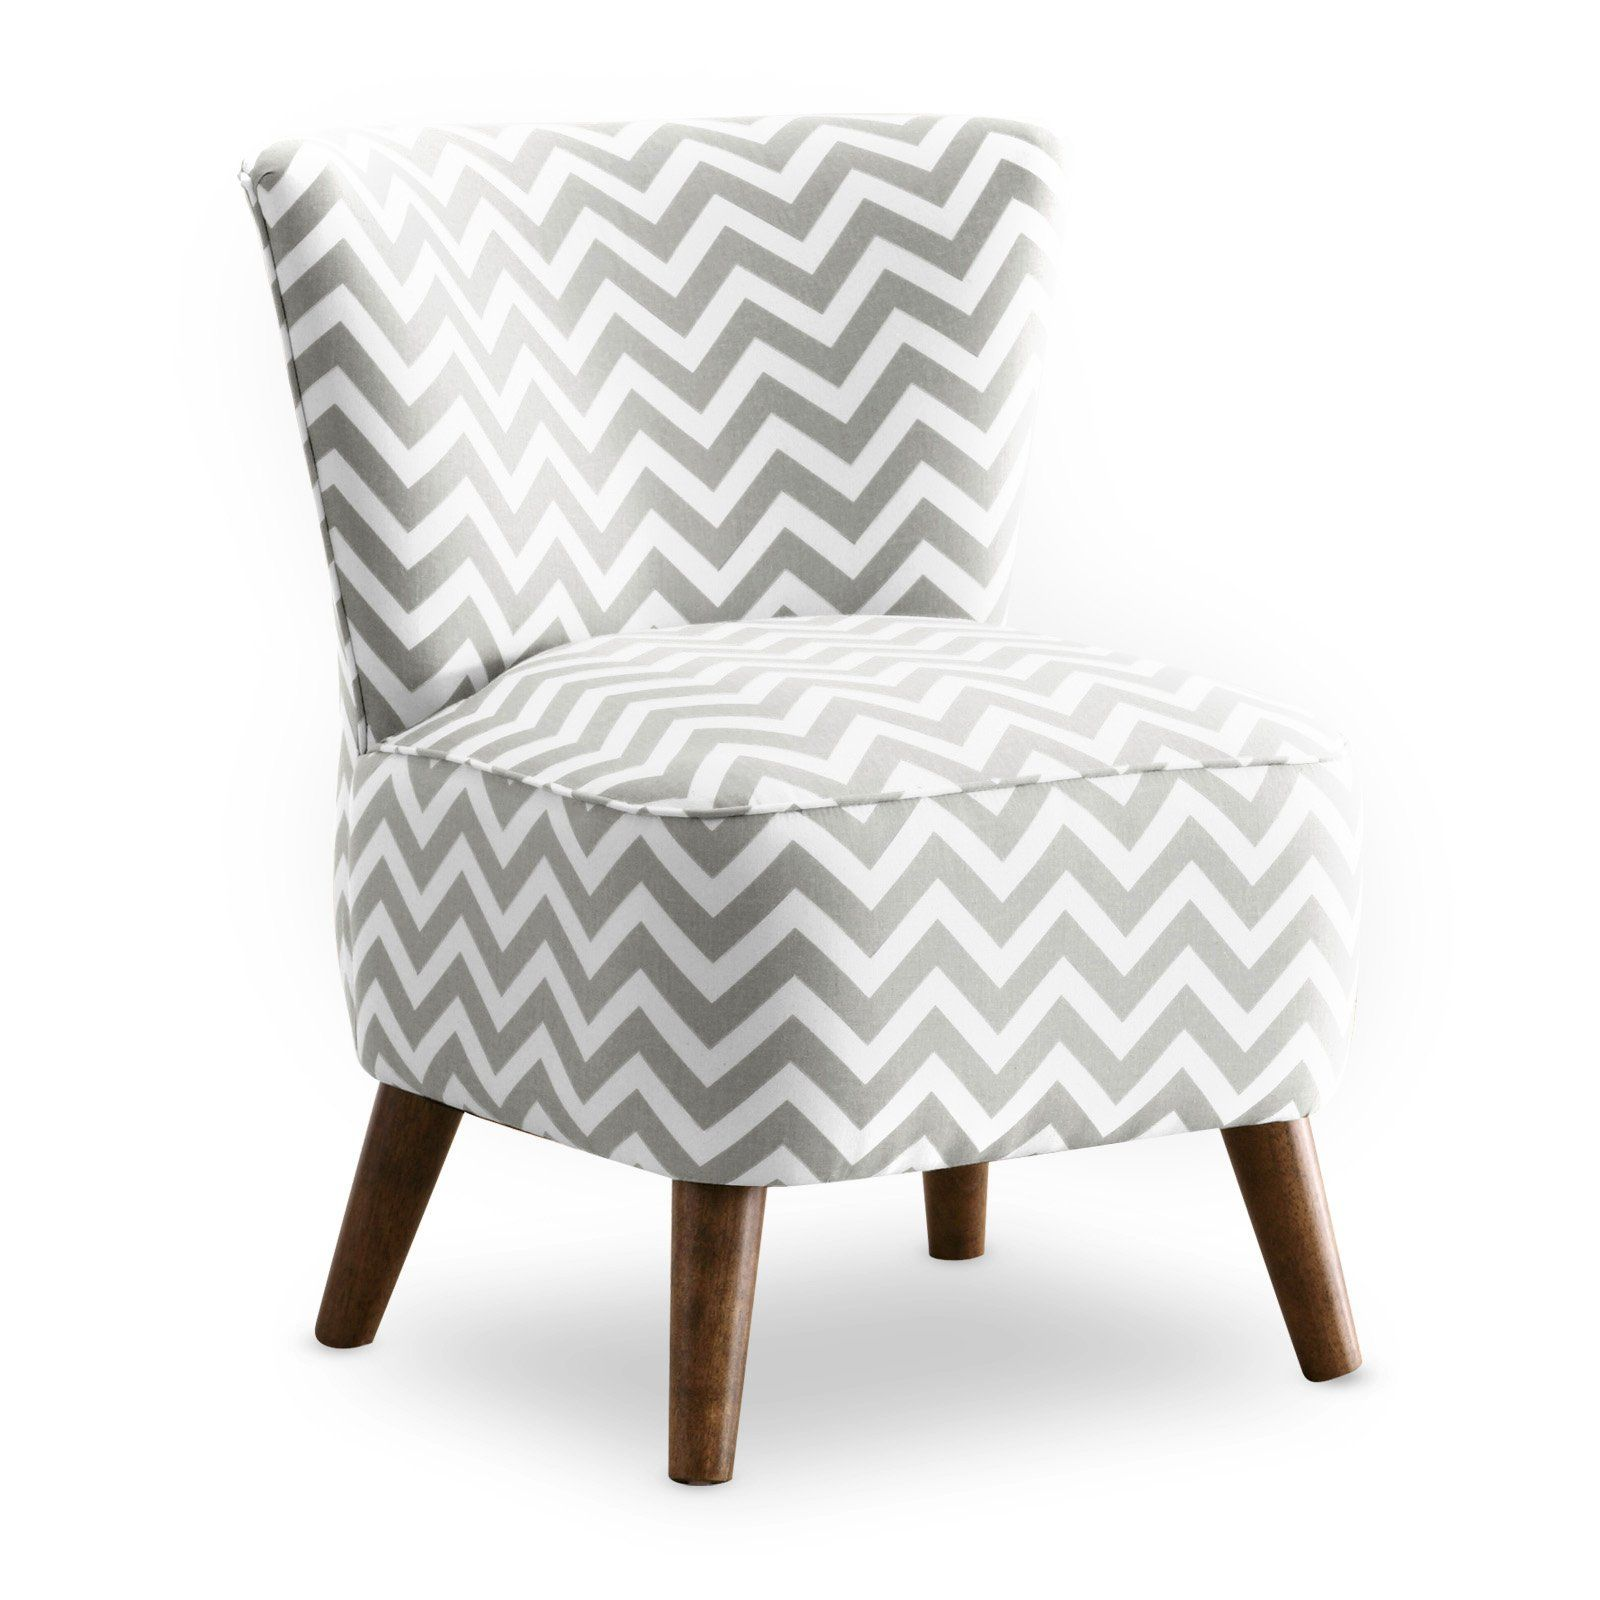 Mcm Chair Mcm Chair Zig Zag Grey And White Accent Chairs Under